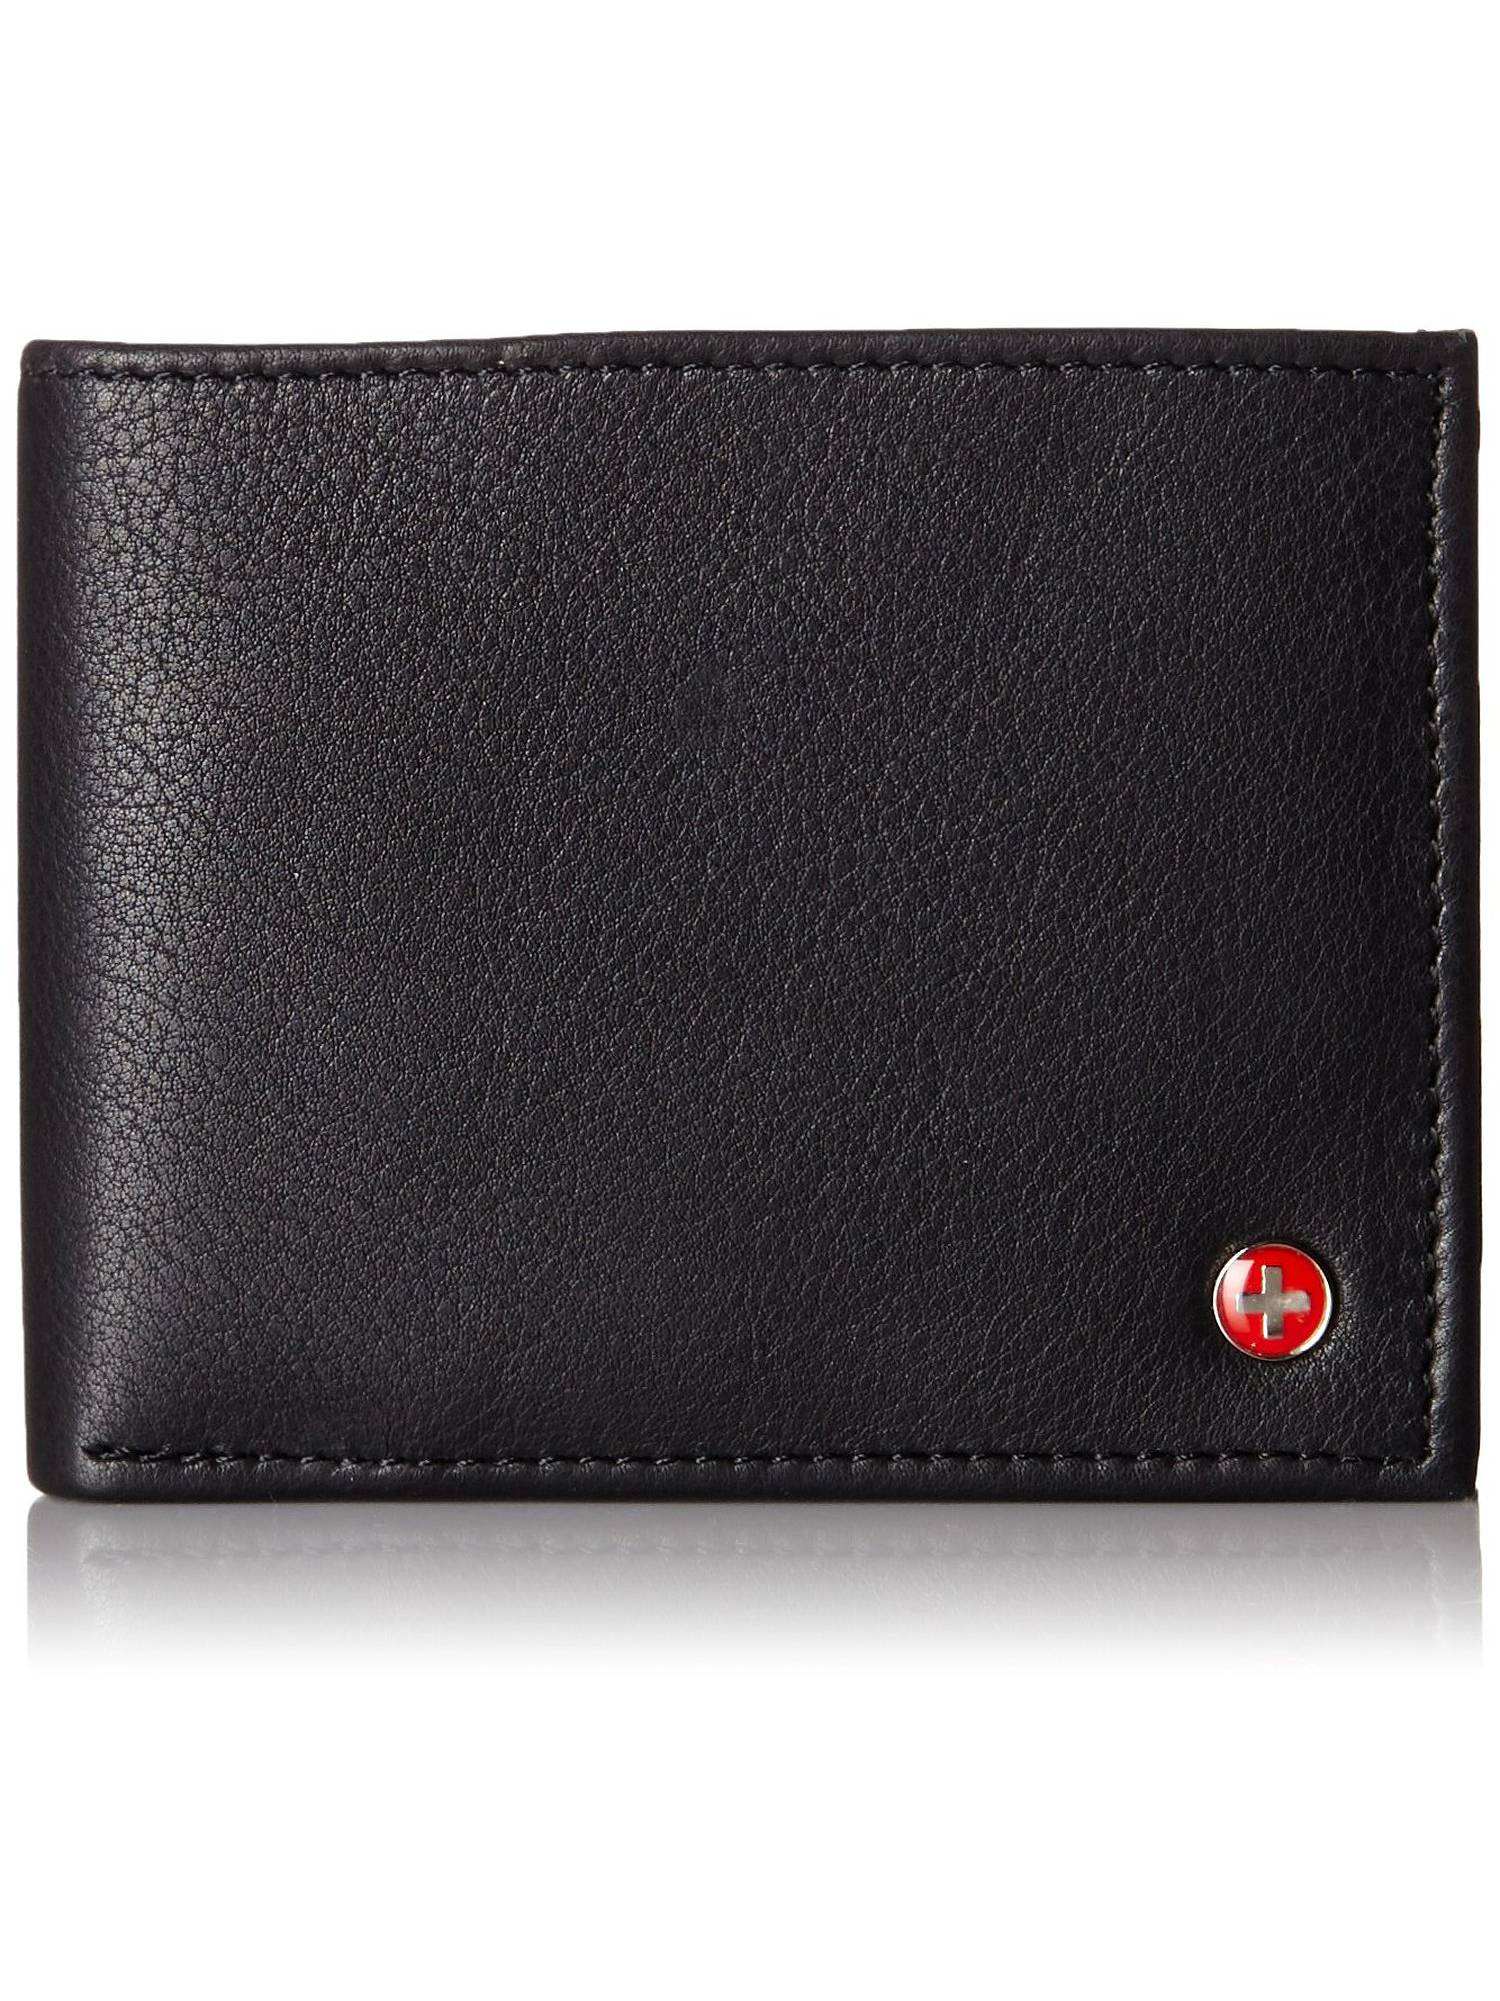 Alpine Swiss Rfid Blocking Mens Bifold Wallet Keep Ideny Credit Cards Safe